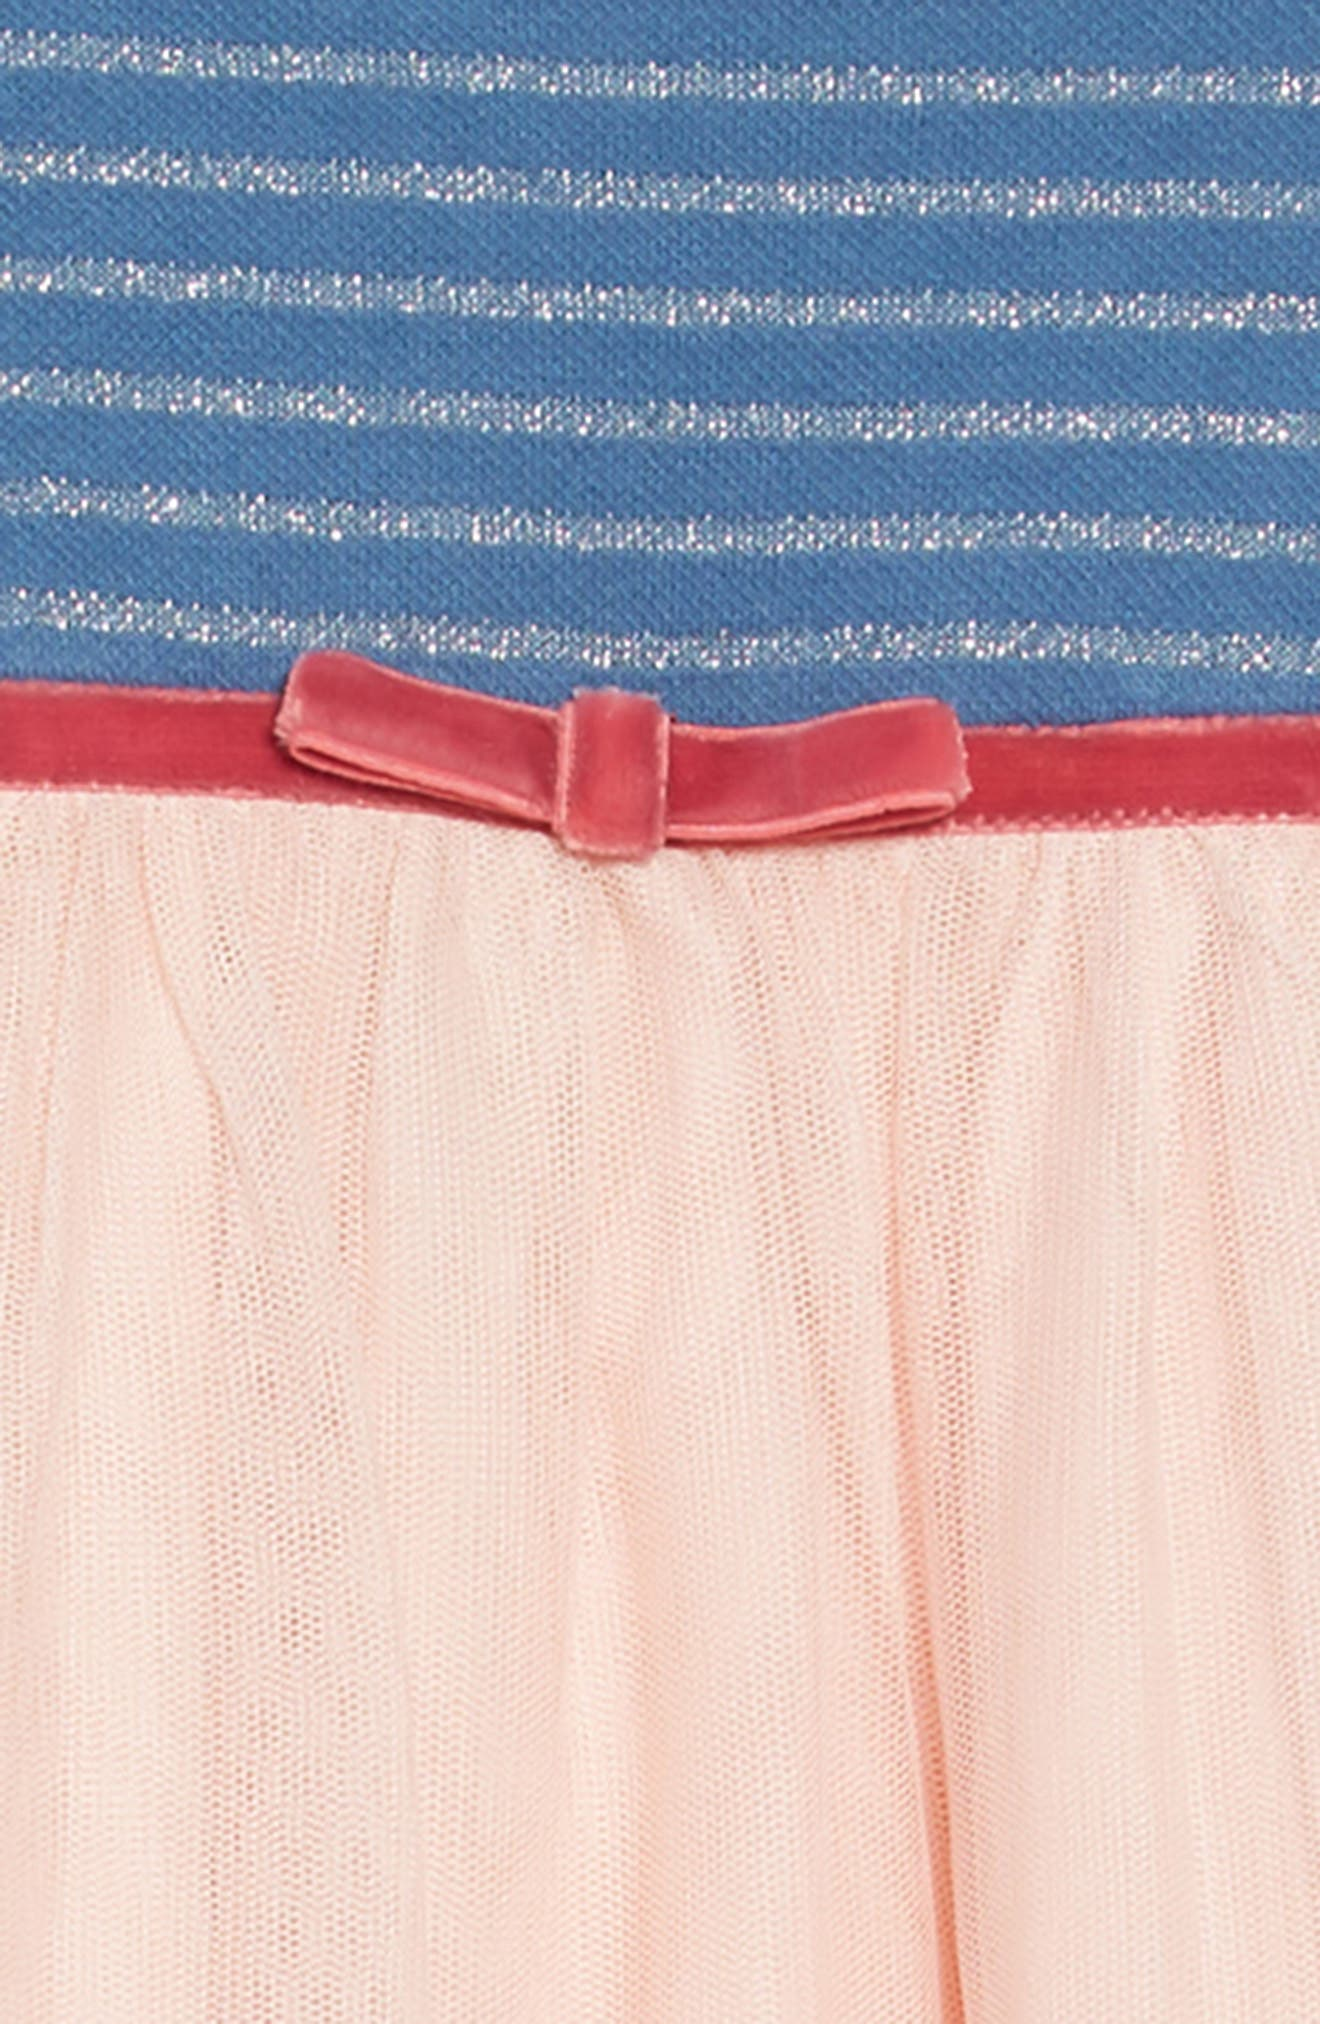 Magical Tulle Dress,                             Alternate thumbnail 3, color,                             PNK PROVENCE DUSTY PINK LLAMA